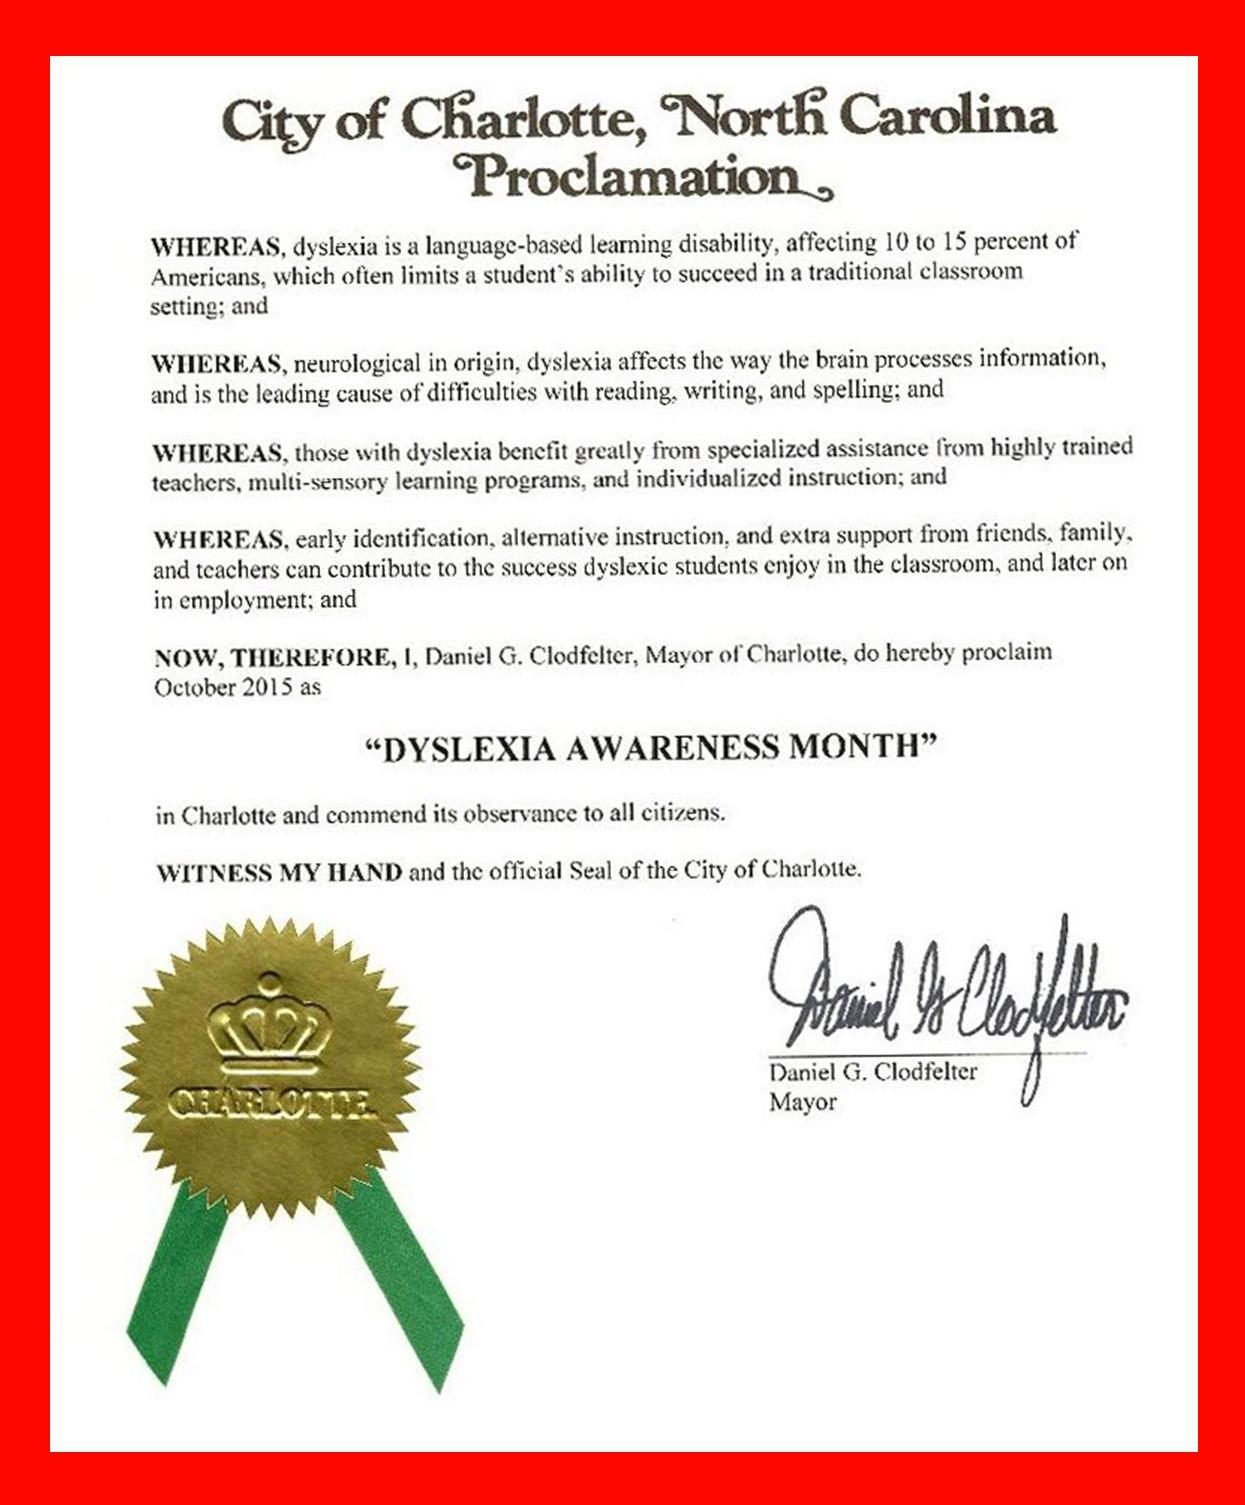 Charlotte Proclamation for Dyslexia Awareness Month